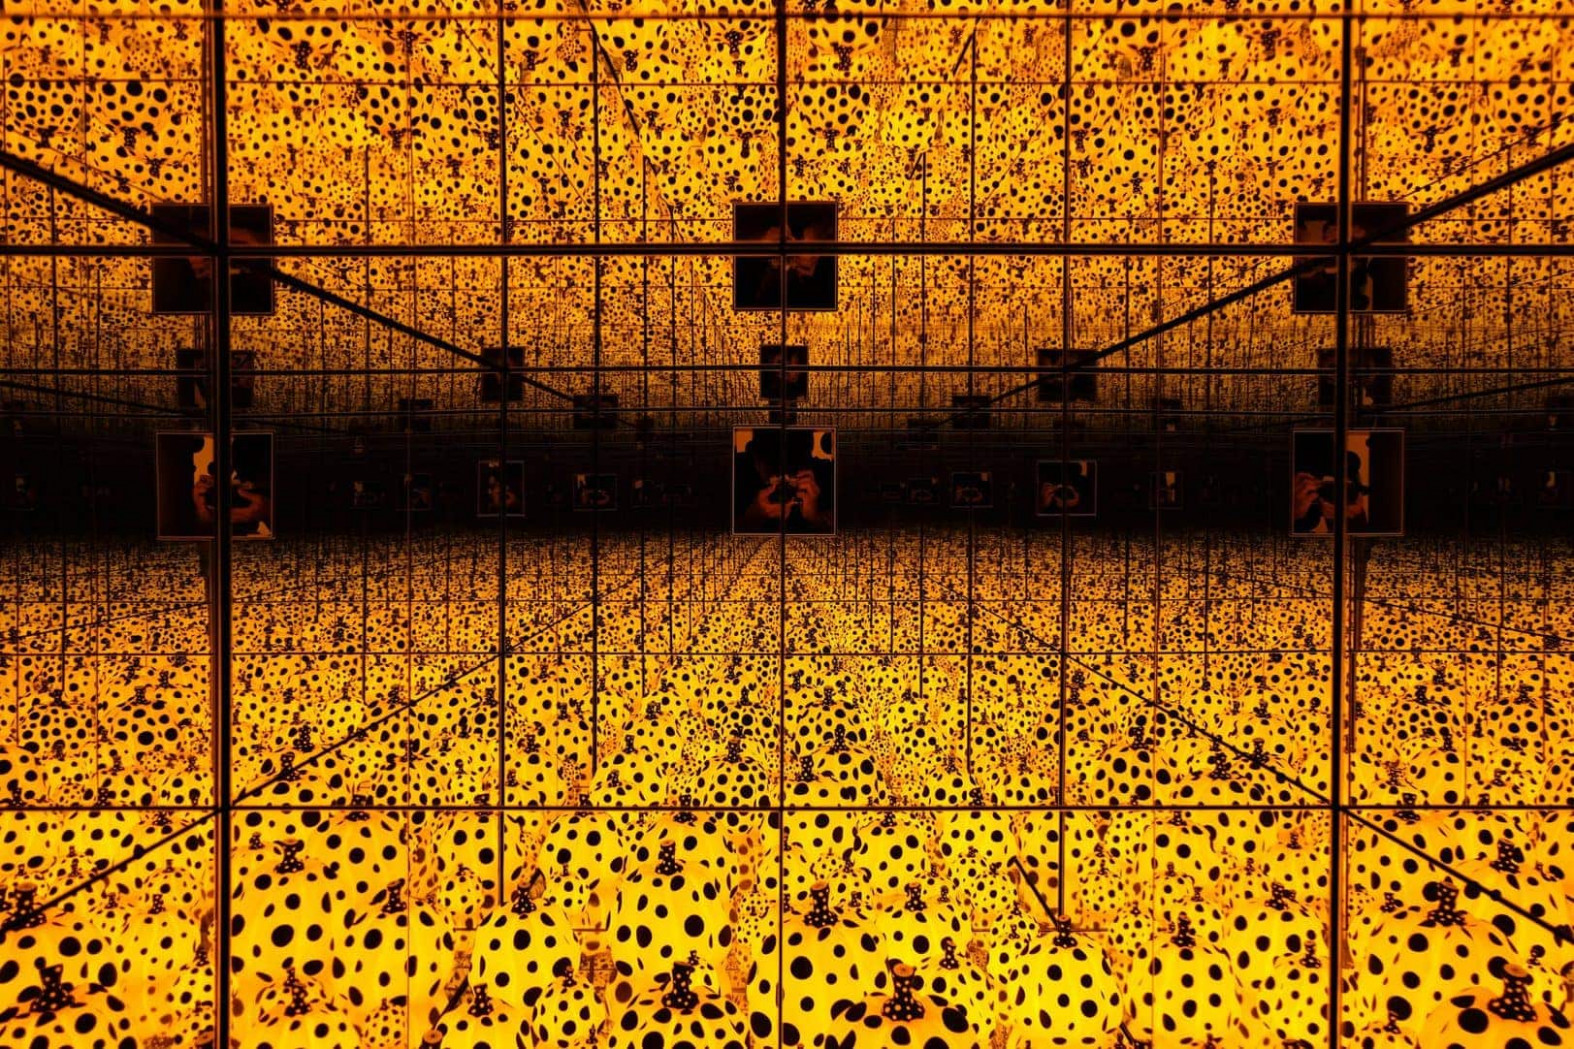 Yayoi Kusama Infinity Mirrors 6 [Complete Walkthrough of Rooms] - yayoi infinity mirrors 2020